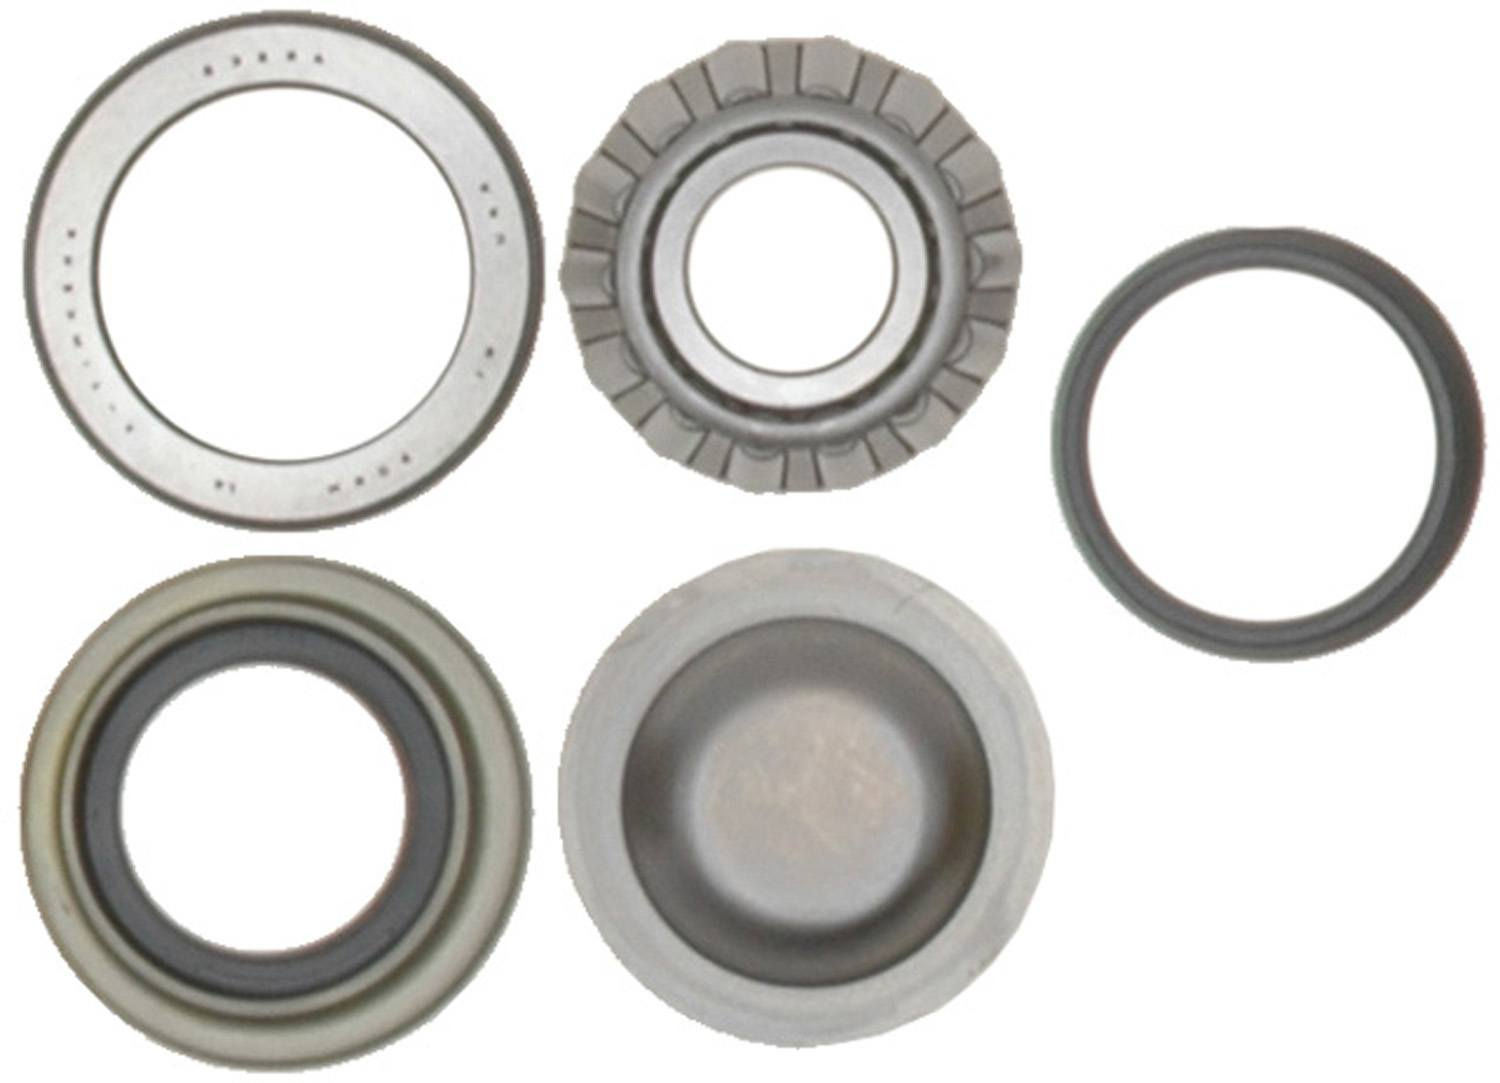 ACDELCO PROFESSIONAL - Steering King Pin Set - DCC 45F1217